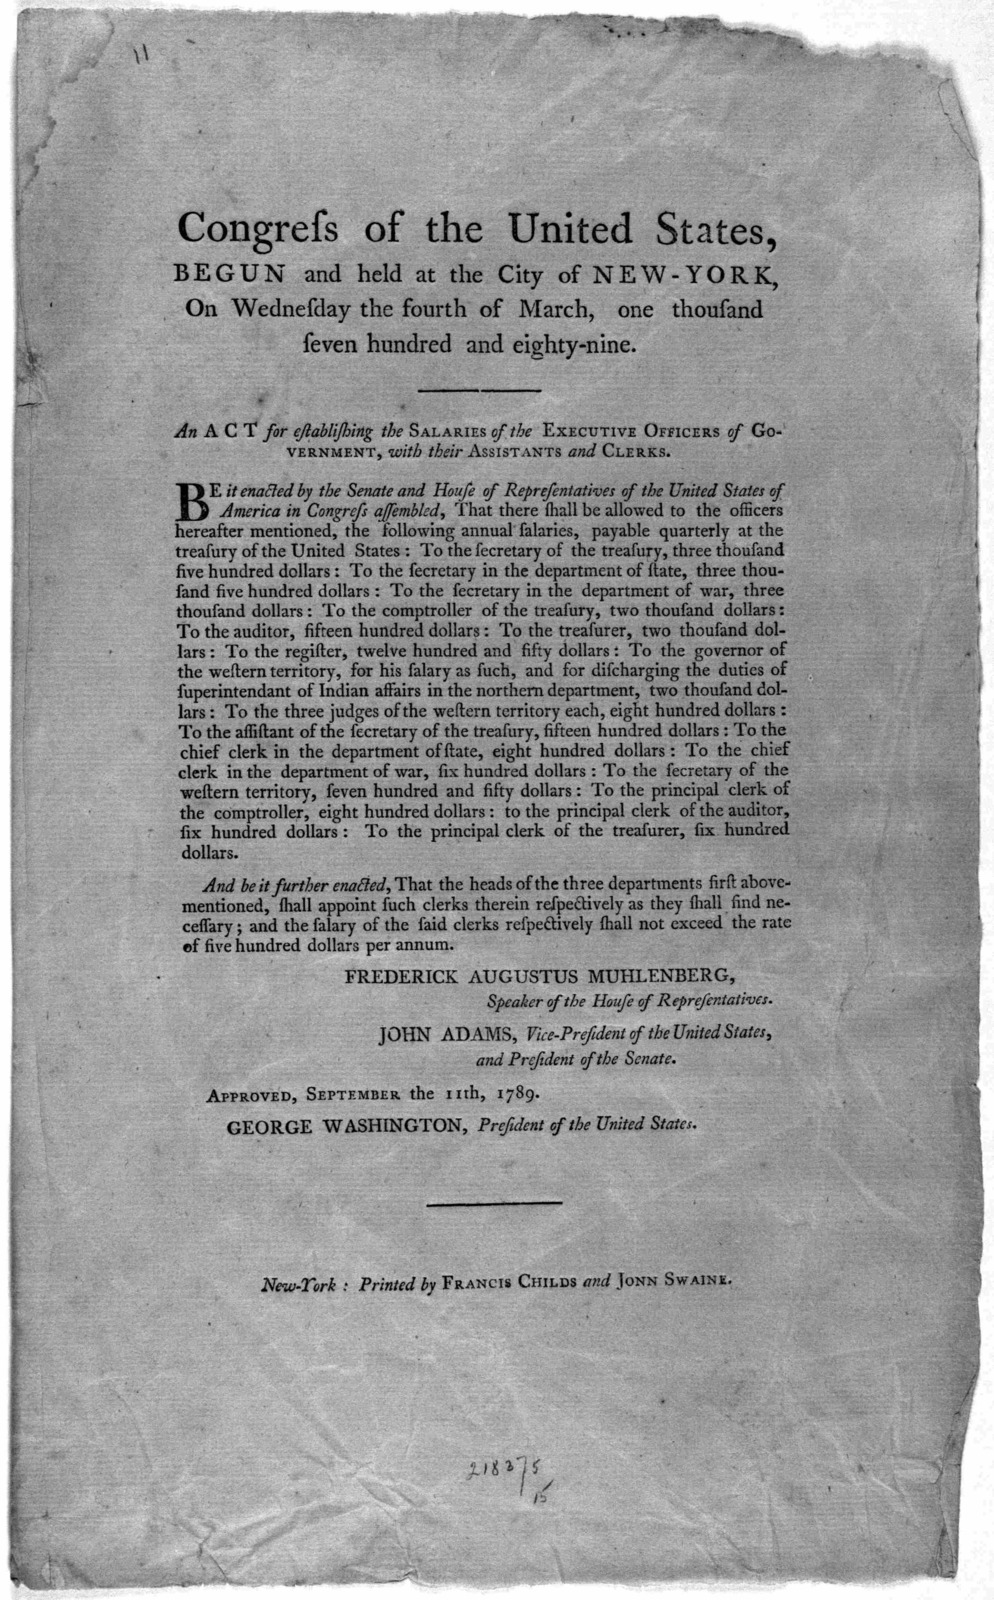 Congress of the United States, begun and held at the City of New-York, on Wednesday the fourth of March, one thousand seven hundred and eighty-nine. An act for establishing the salaries of the executive officers of government, with their assista